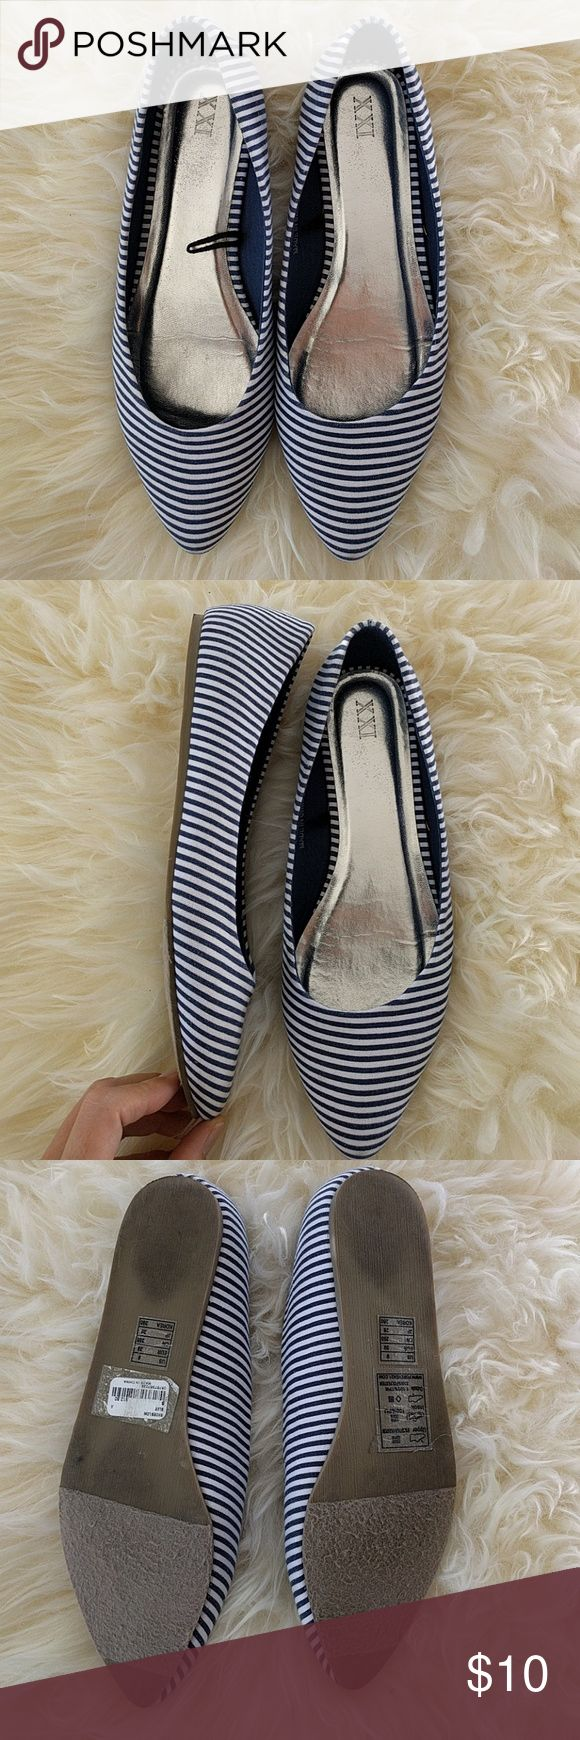 Forever 21 blue & white stripe pointed toe flat 9 Forever 21 blue and white stripe ballet flat pointed toe size 9 worn only once Forever 21 Shoes Flats & Loafers